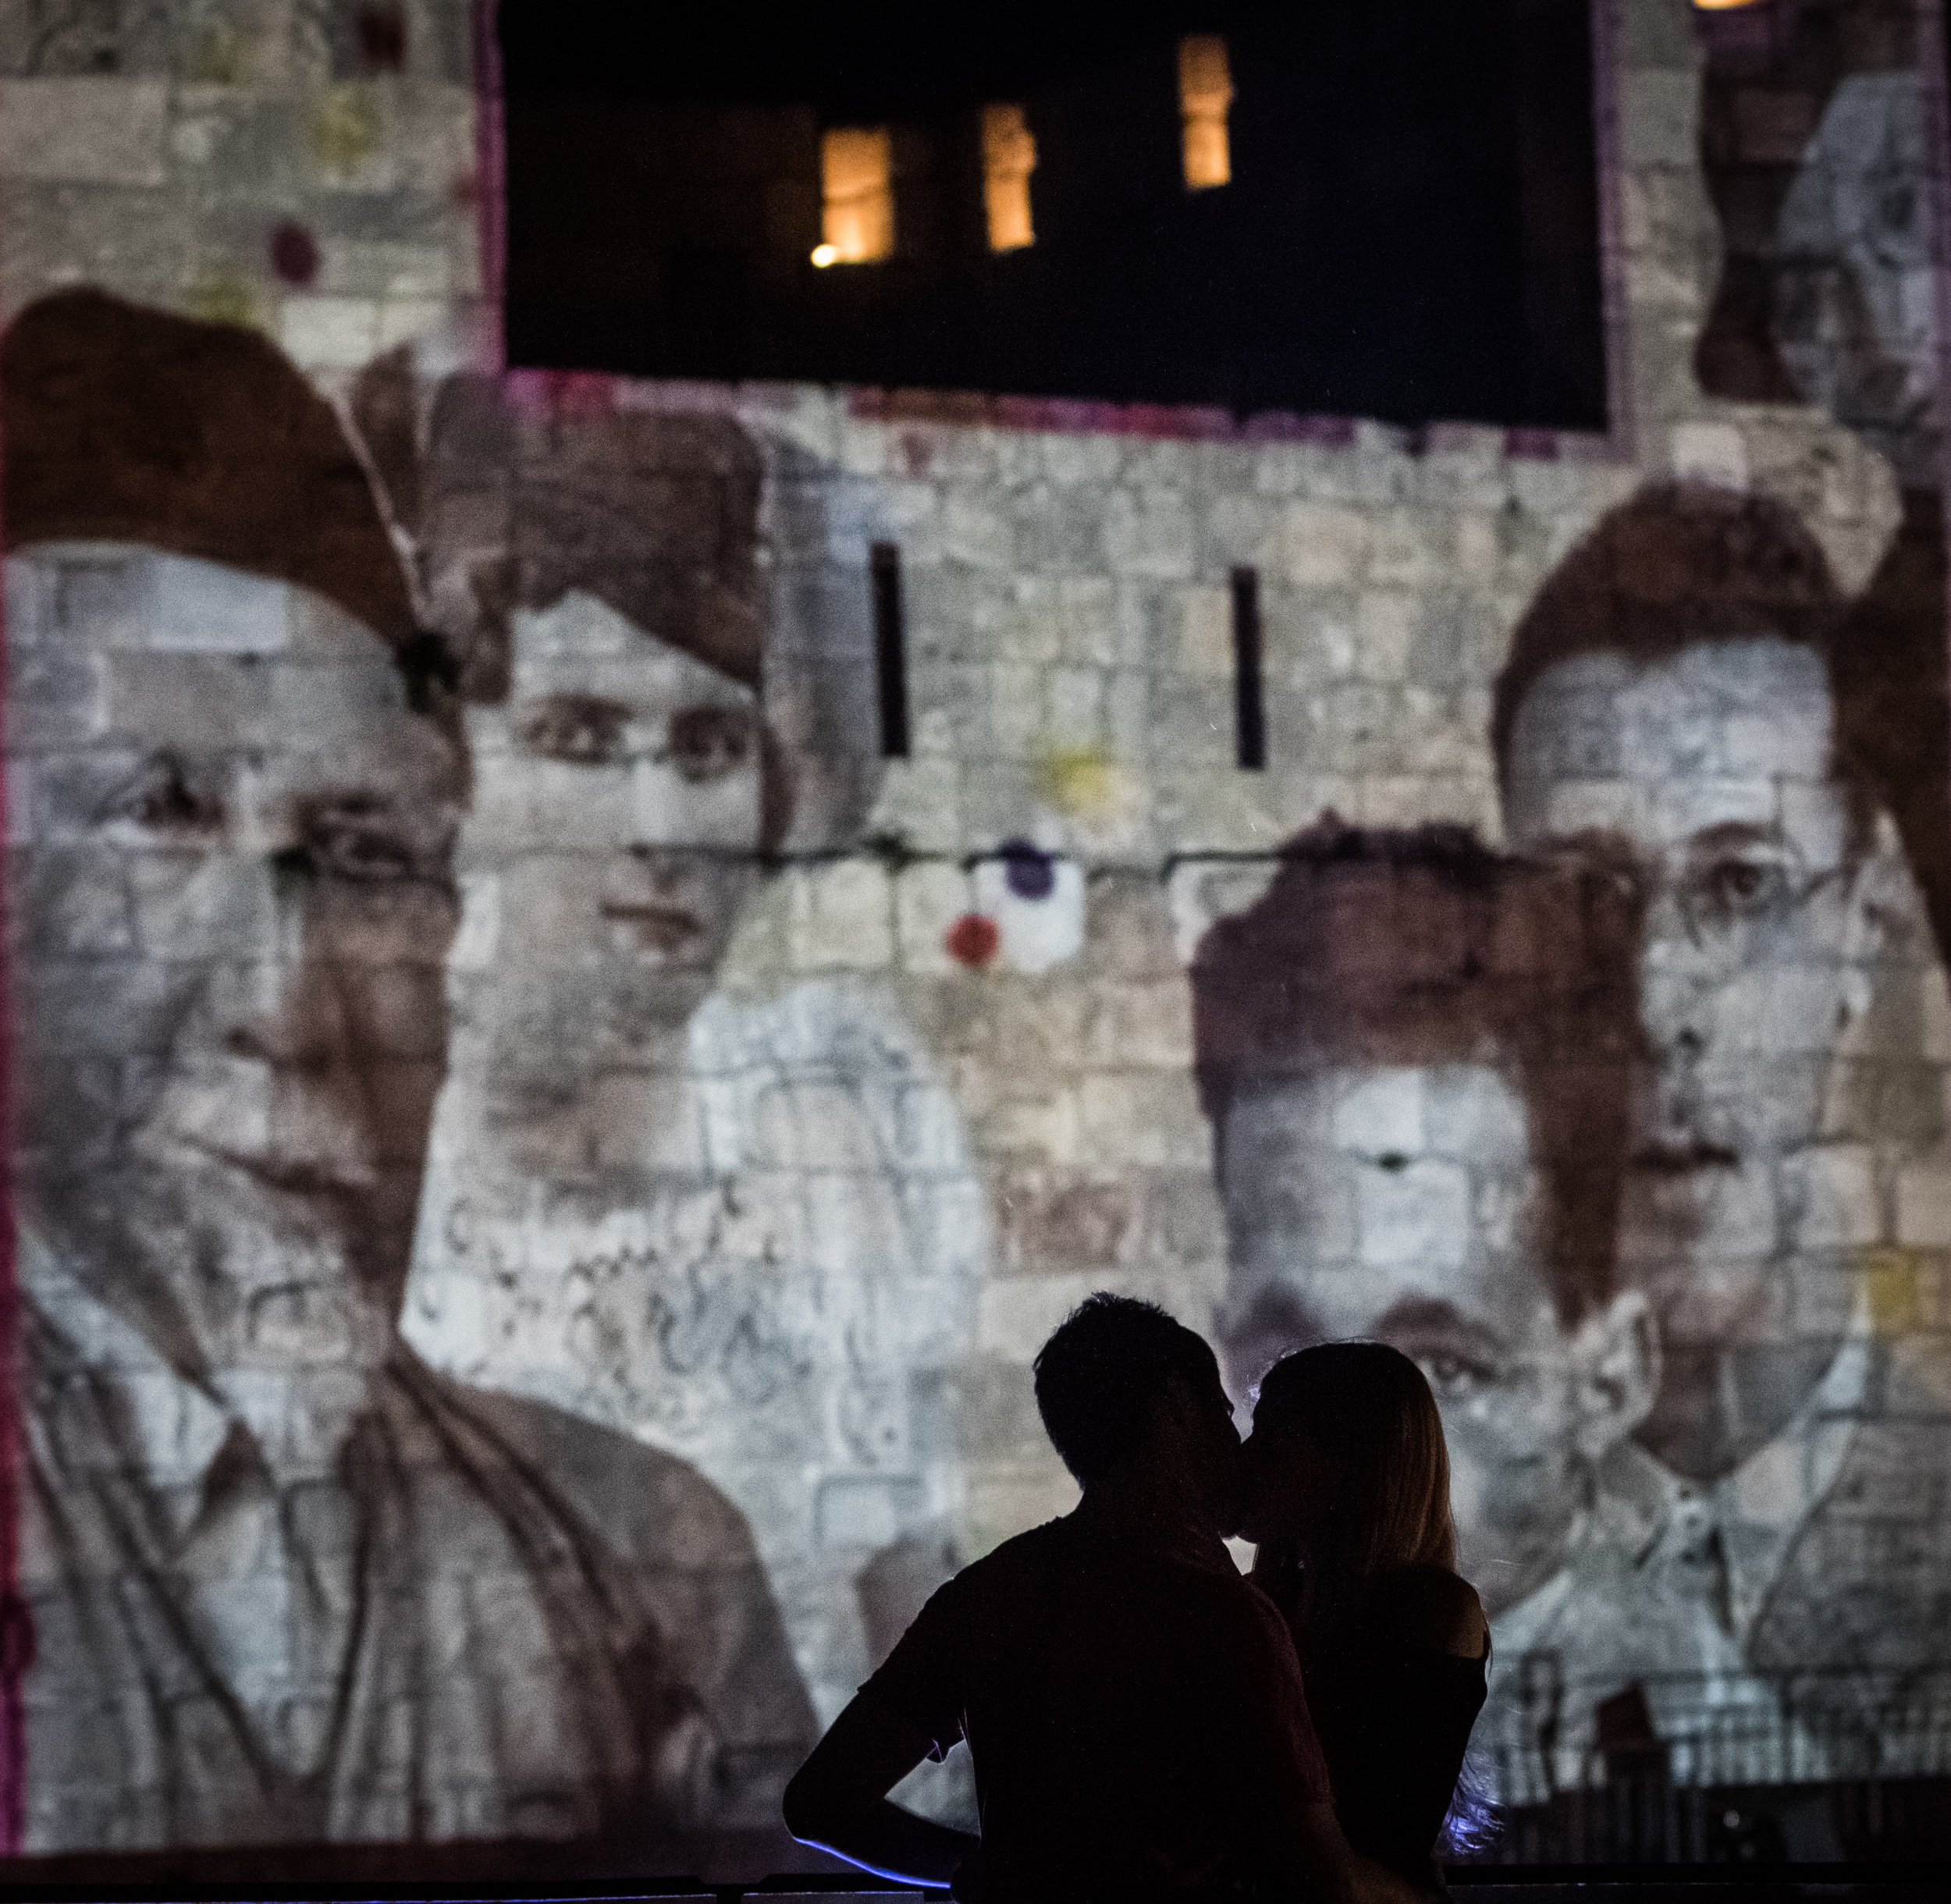 A couple shares an intimate moment in front of an artistic installation projected onto one of the ramparts inside the Tower of David museum as part of the Nylon  #2  art exhibition, July 7, 2016. The event featured dozens of live musicians, dance performances, live sketchings and other forms of art to celebrate the ending of the term for many of the city's local art students.